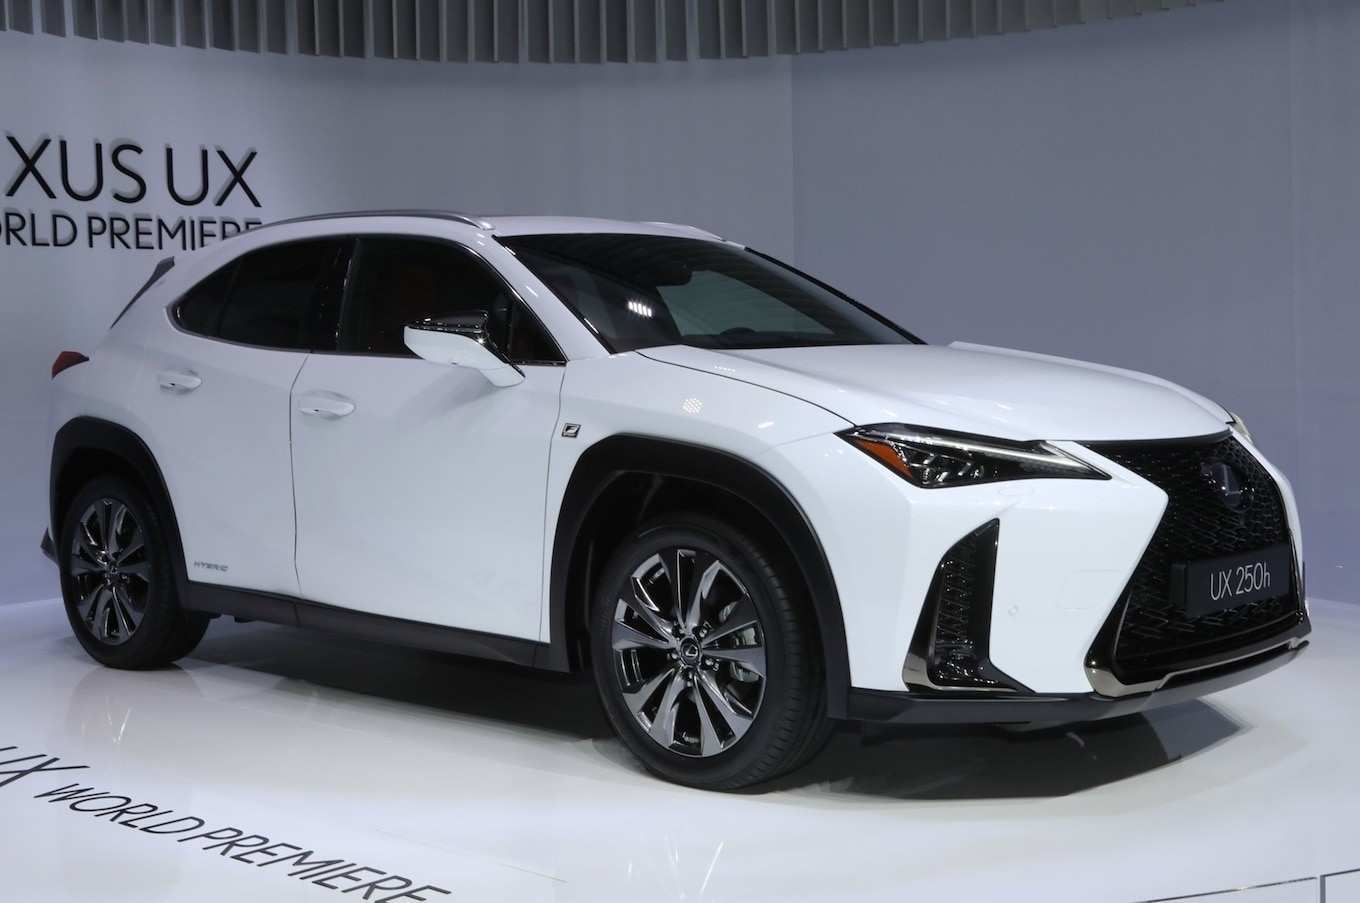 52 A 2019 Lexus Minivan Spy Shoot